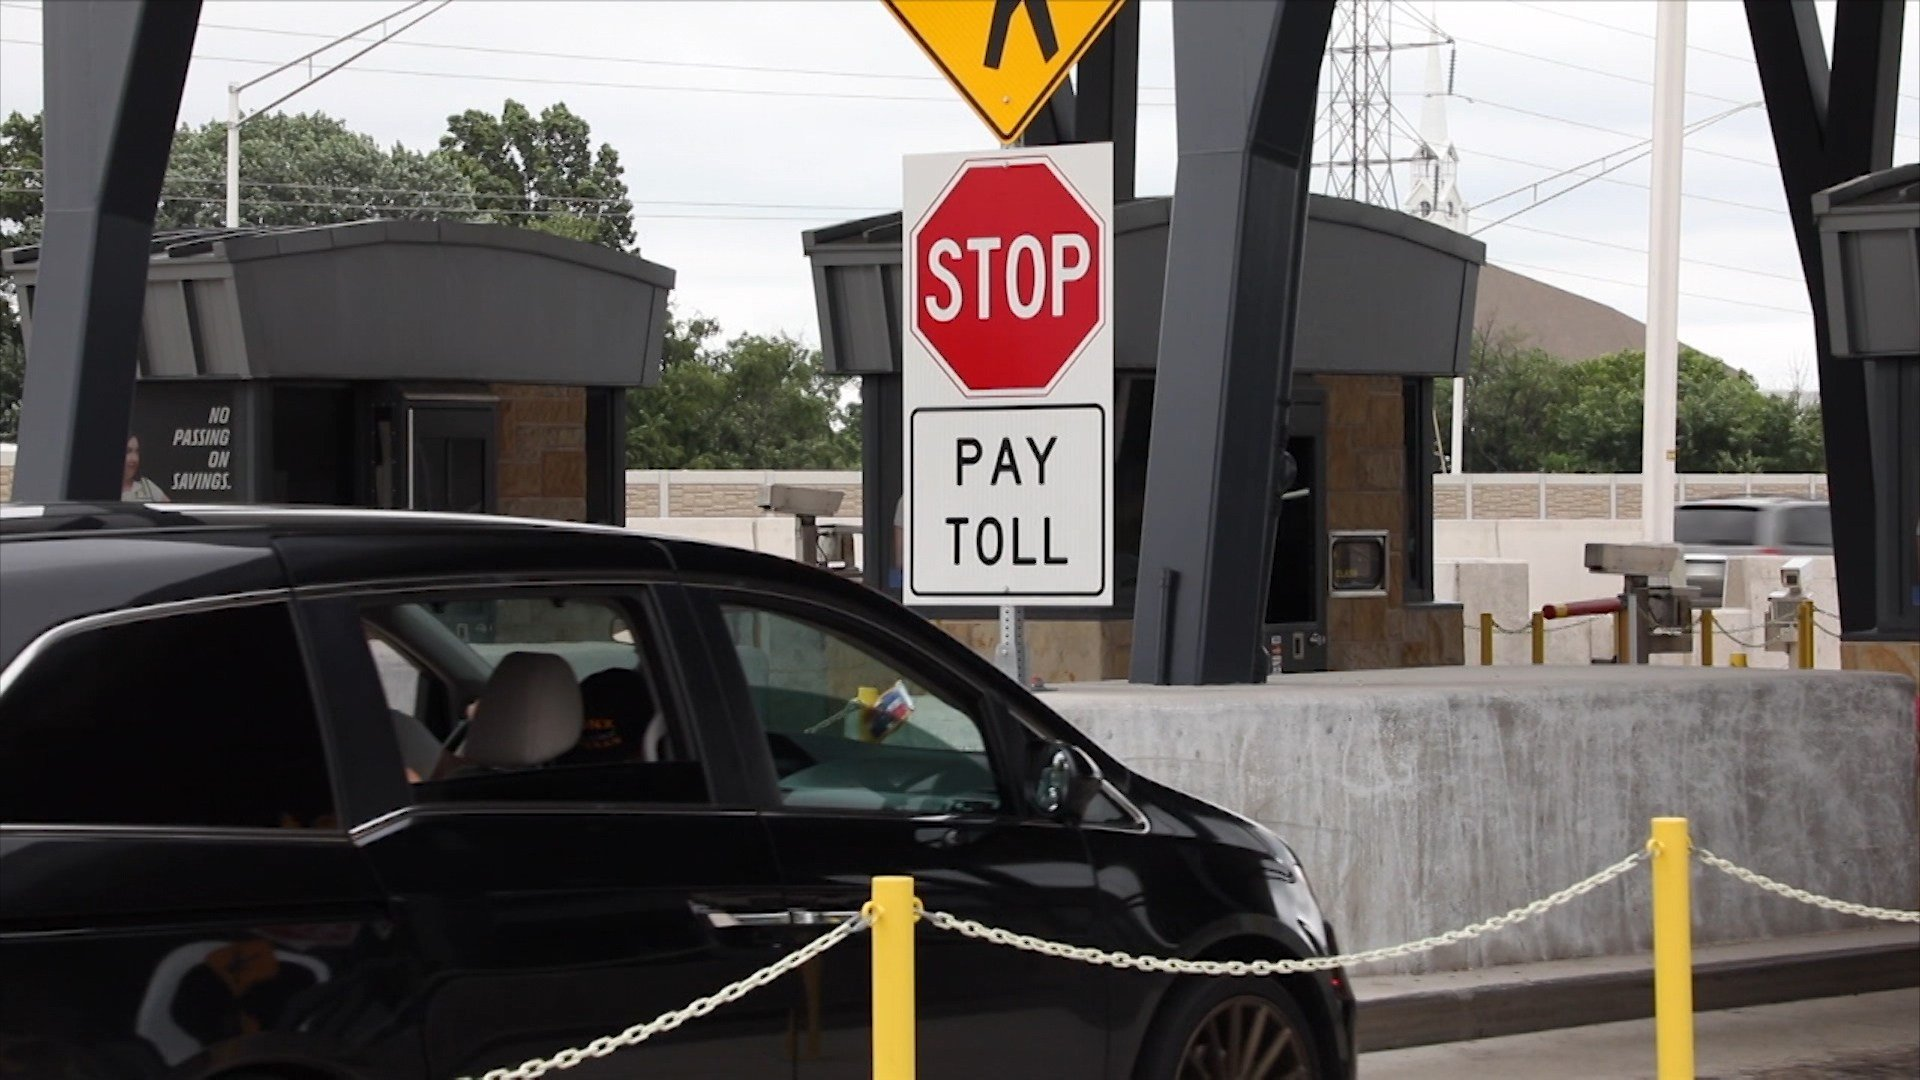 Pennsylvania Turnpike cracking down on those who owe tolls, announces amnesty program